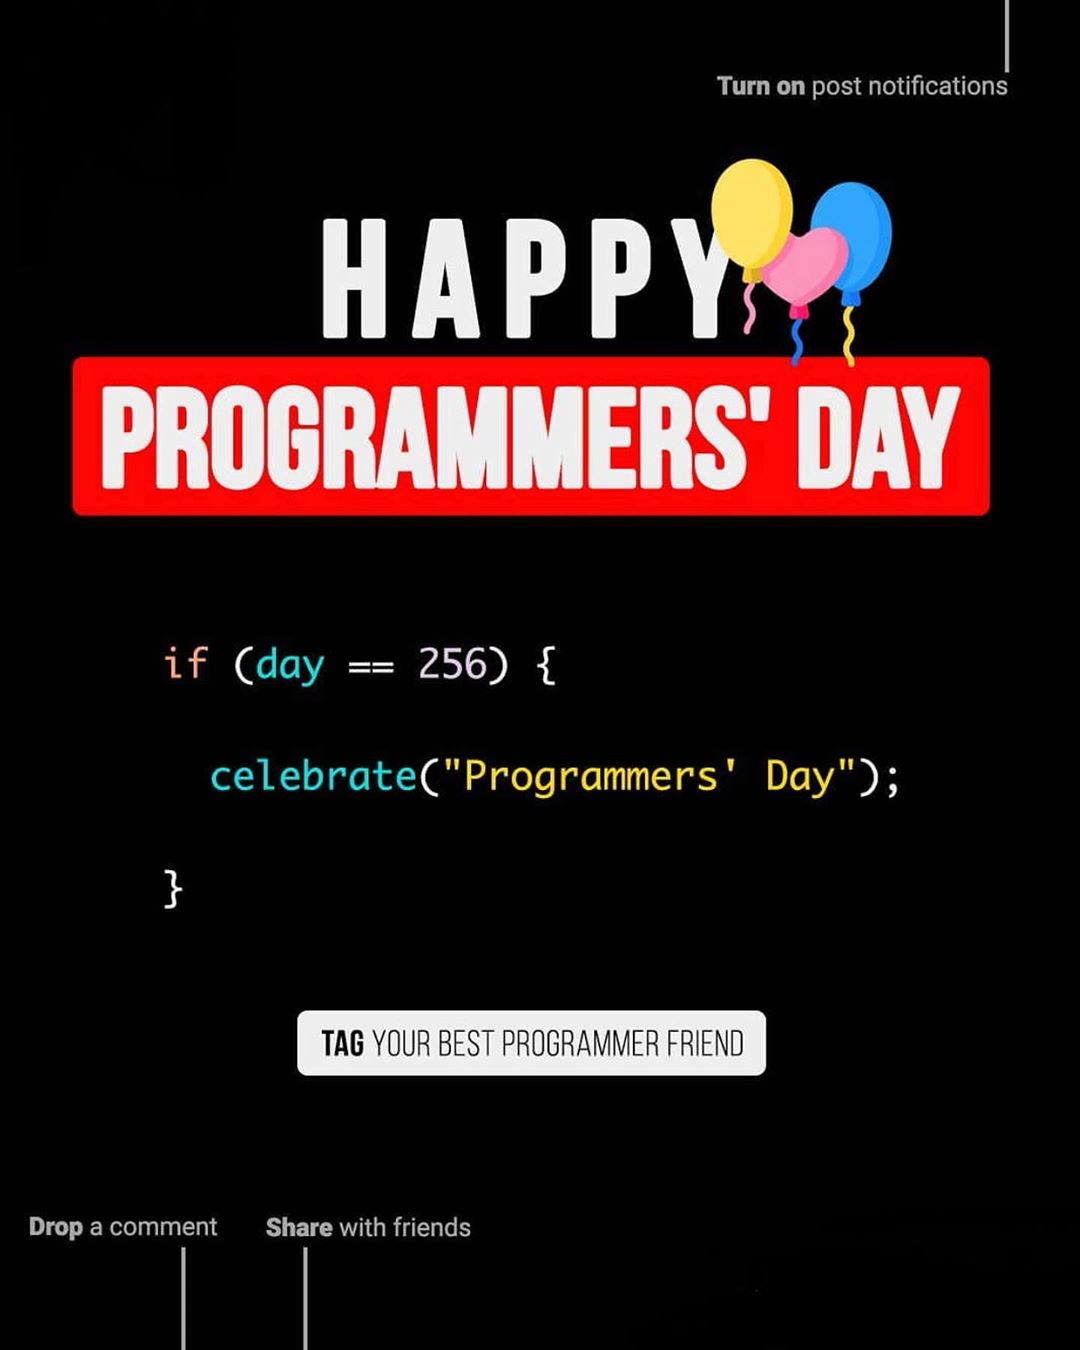 Happy Programmers Day!